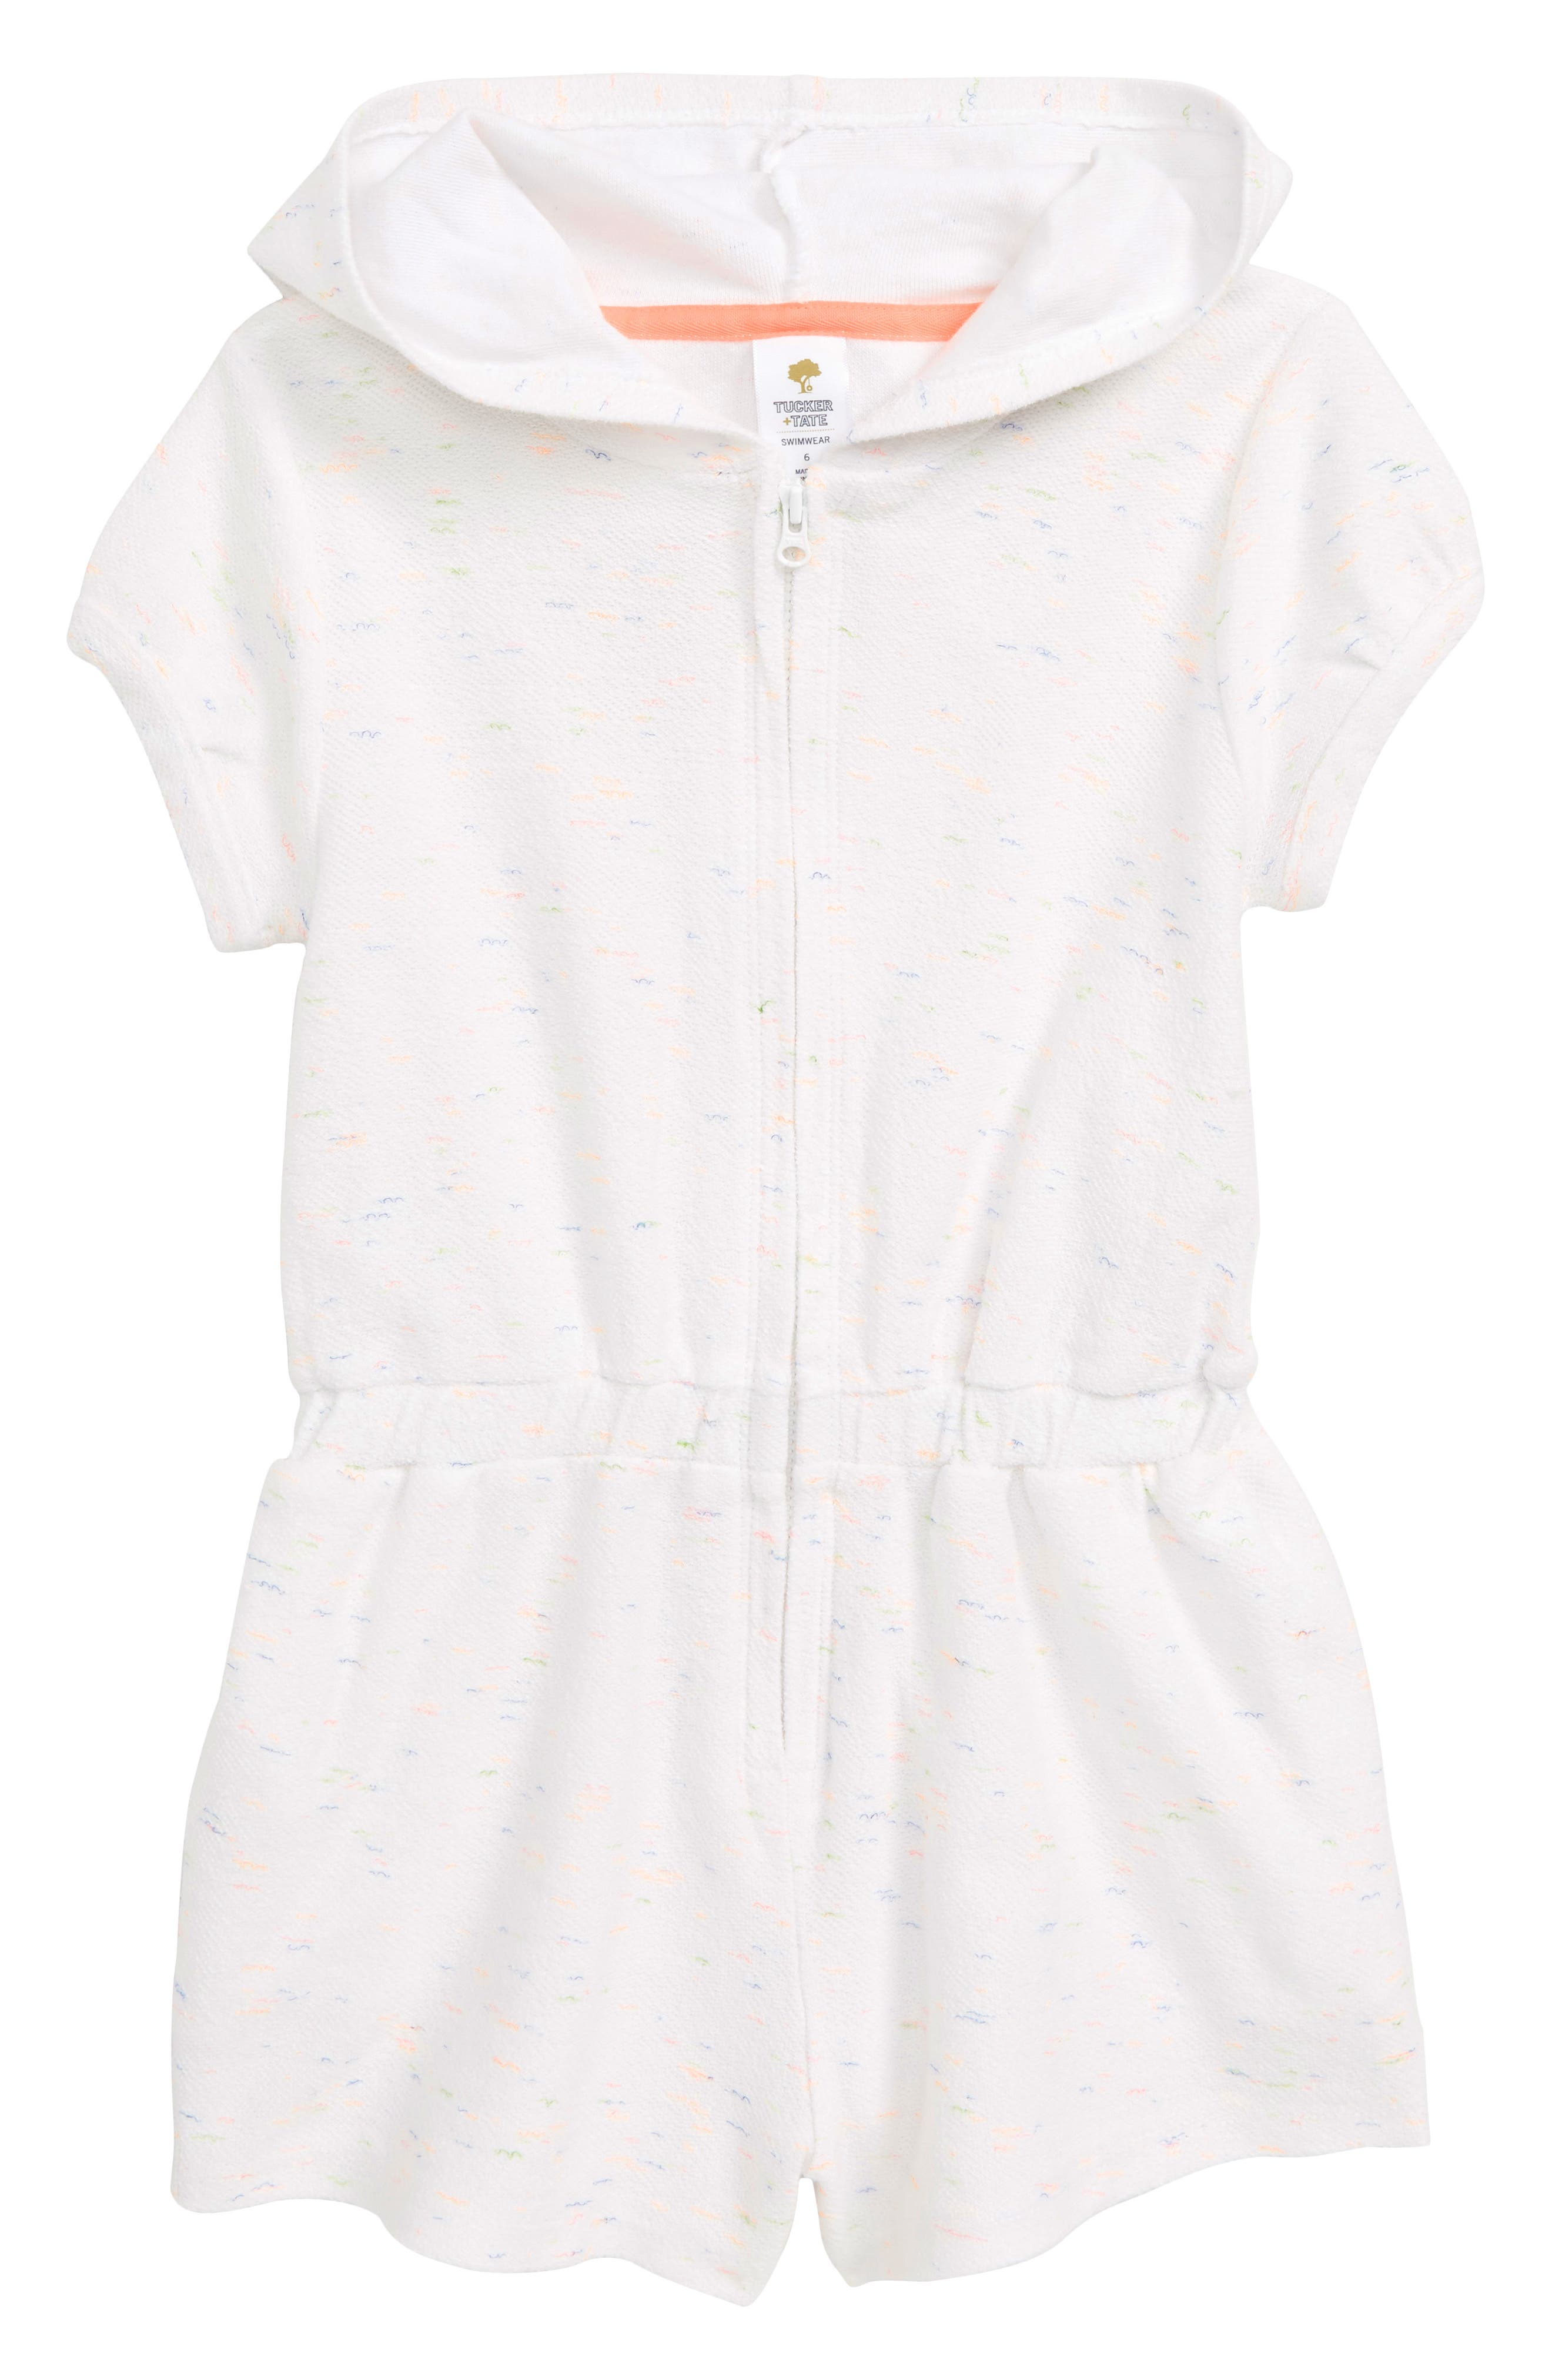 TUCKER + TATE,                             Terry Cover-Up Romper,                             Main thumbnail 1, color,                             WHITE